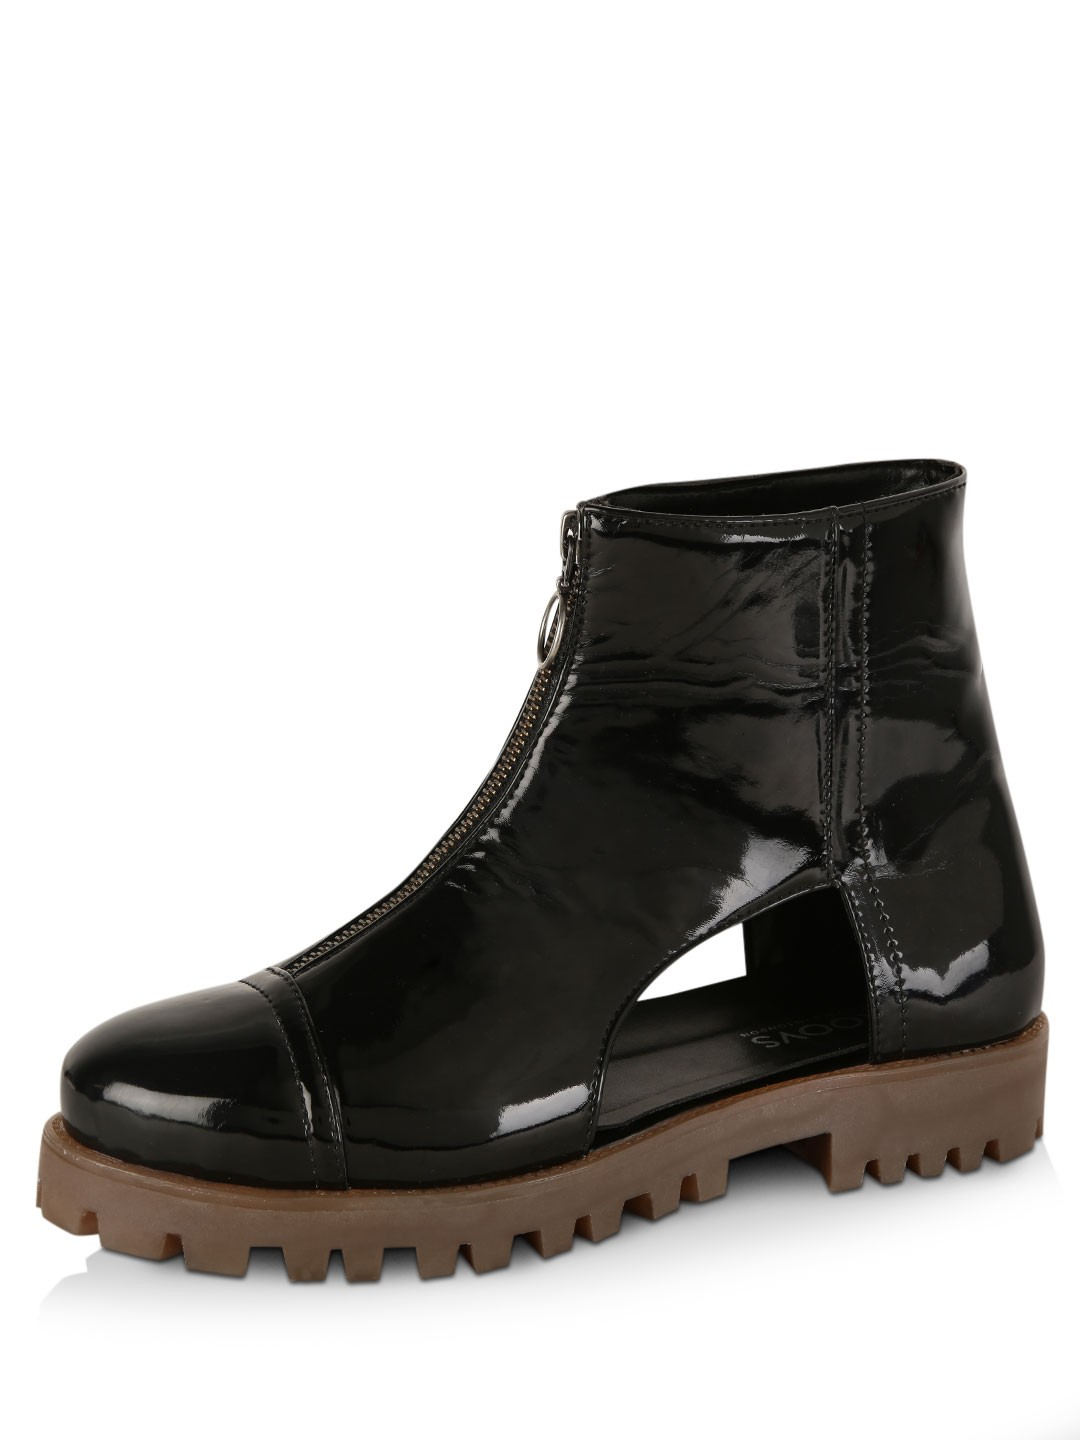 KOOVS Black Cleated Sole Ankle Boots 1